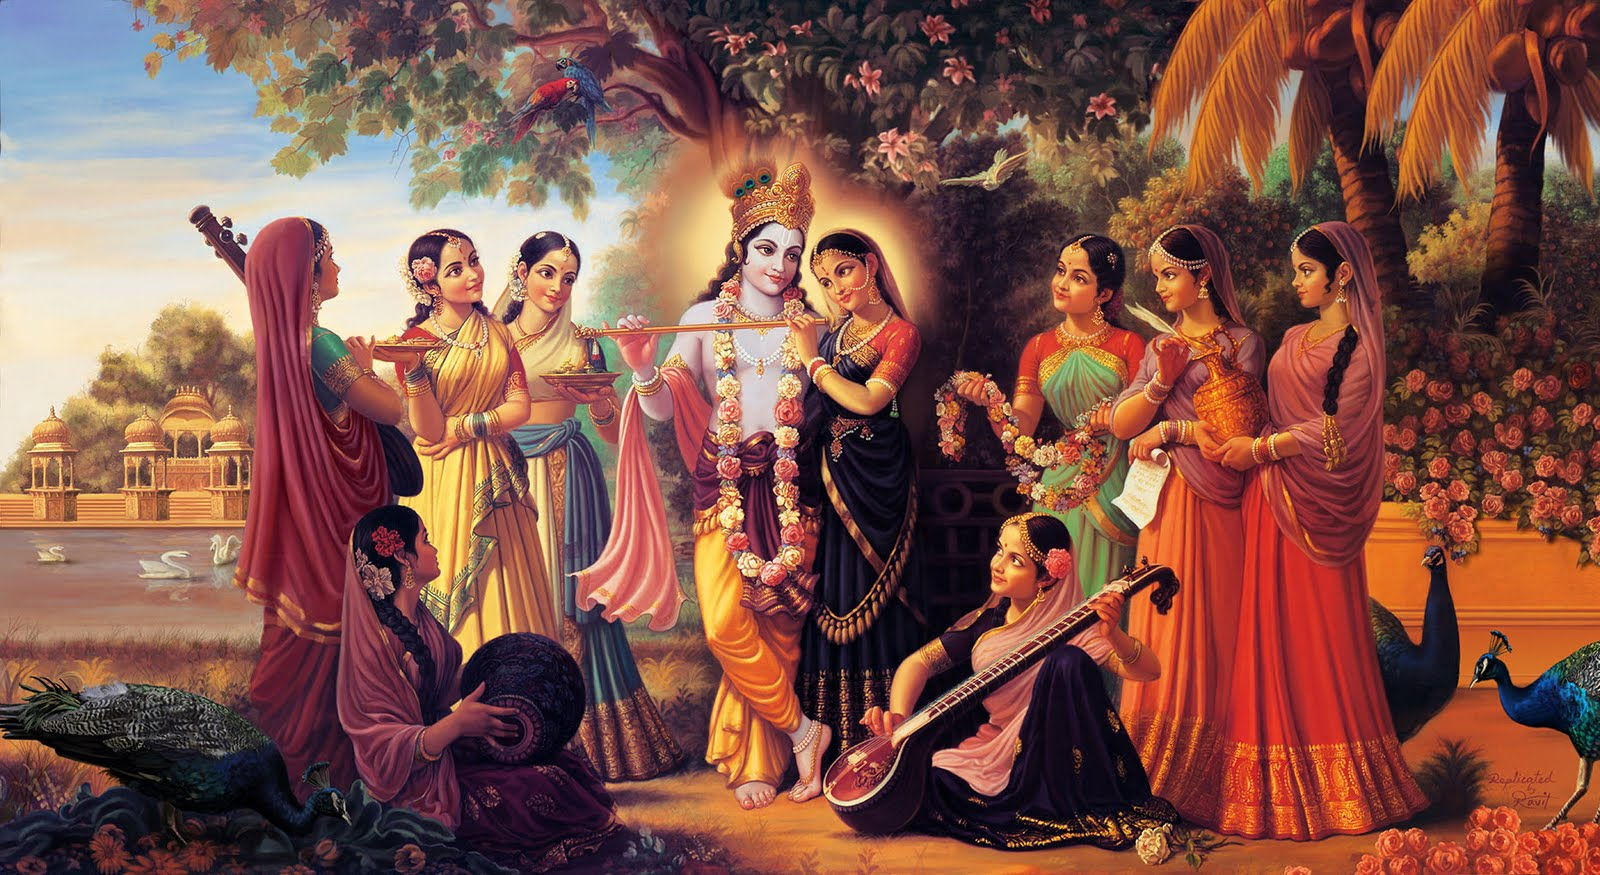 Sathya 3d Name Wallpaper Sathya Sai With Students Bhakti Part 3 The Stories Of